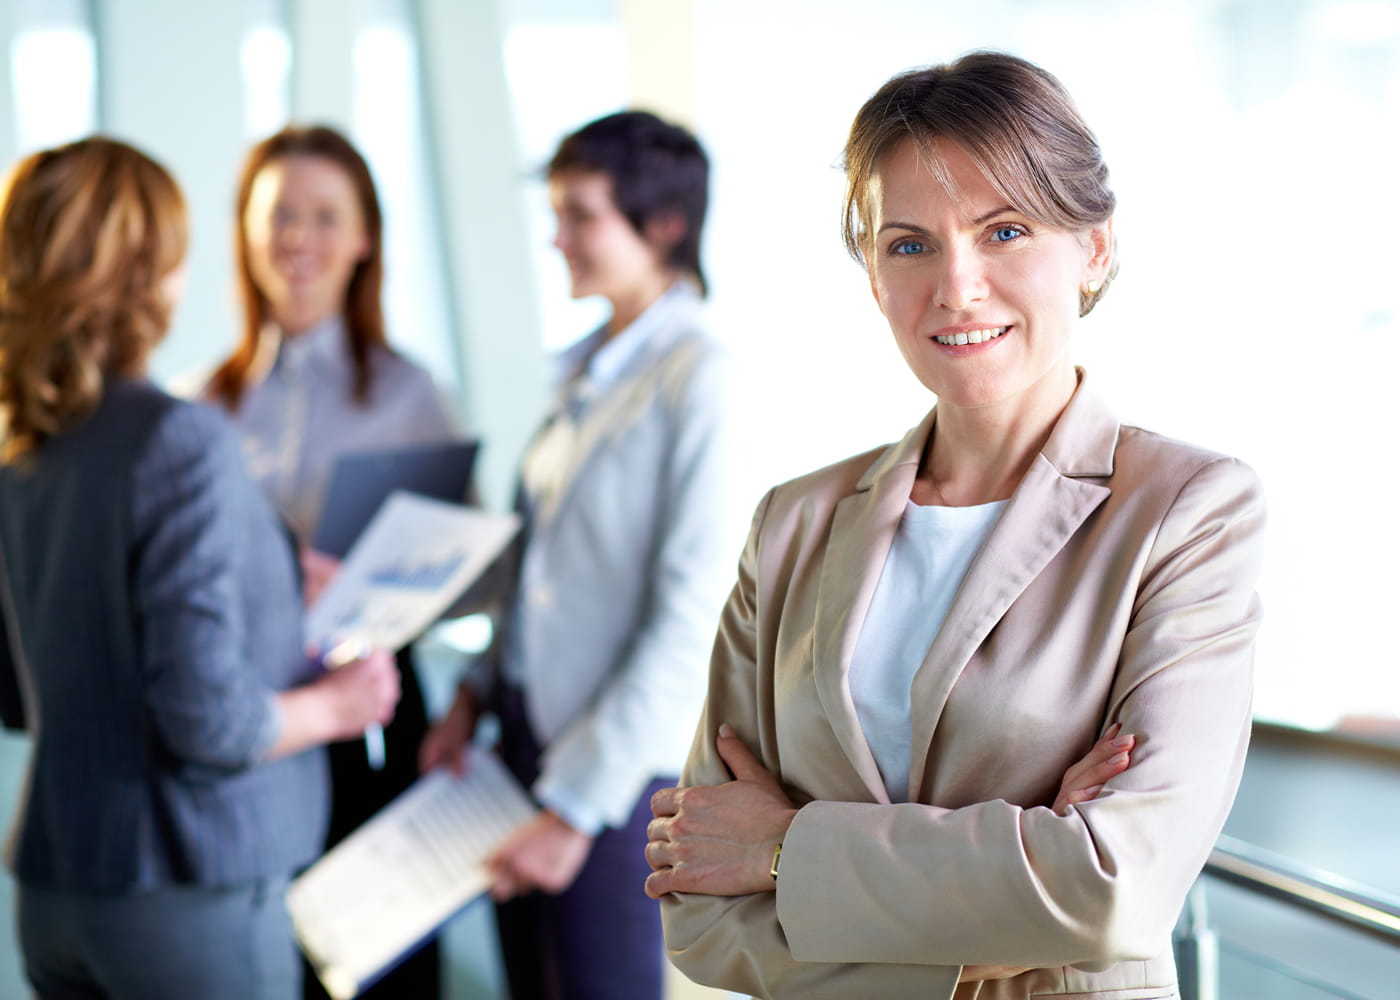 Finding Your Leadership Voice